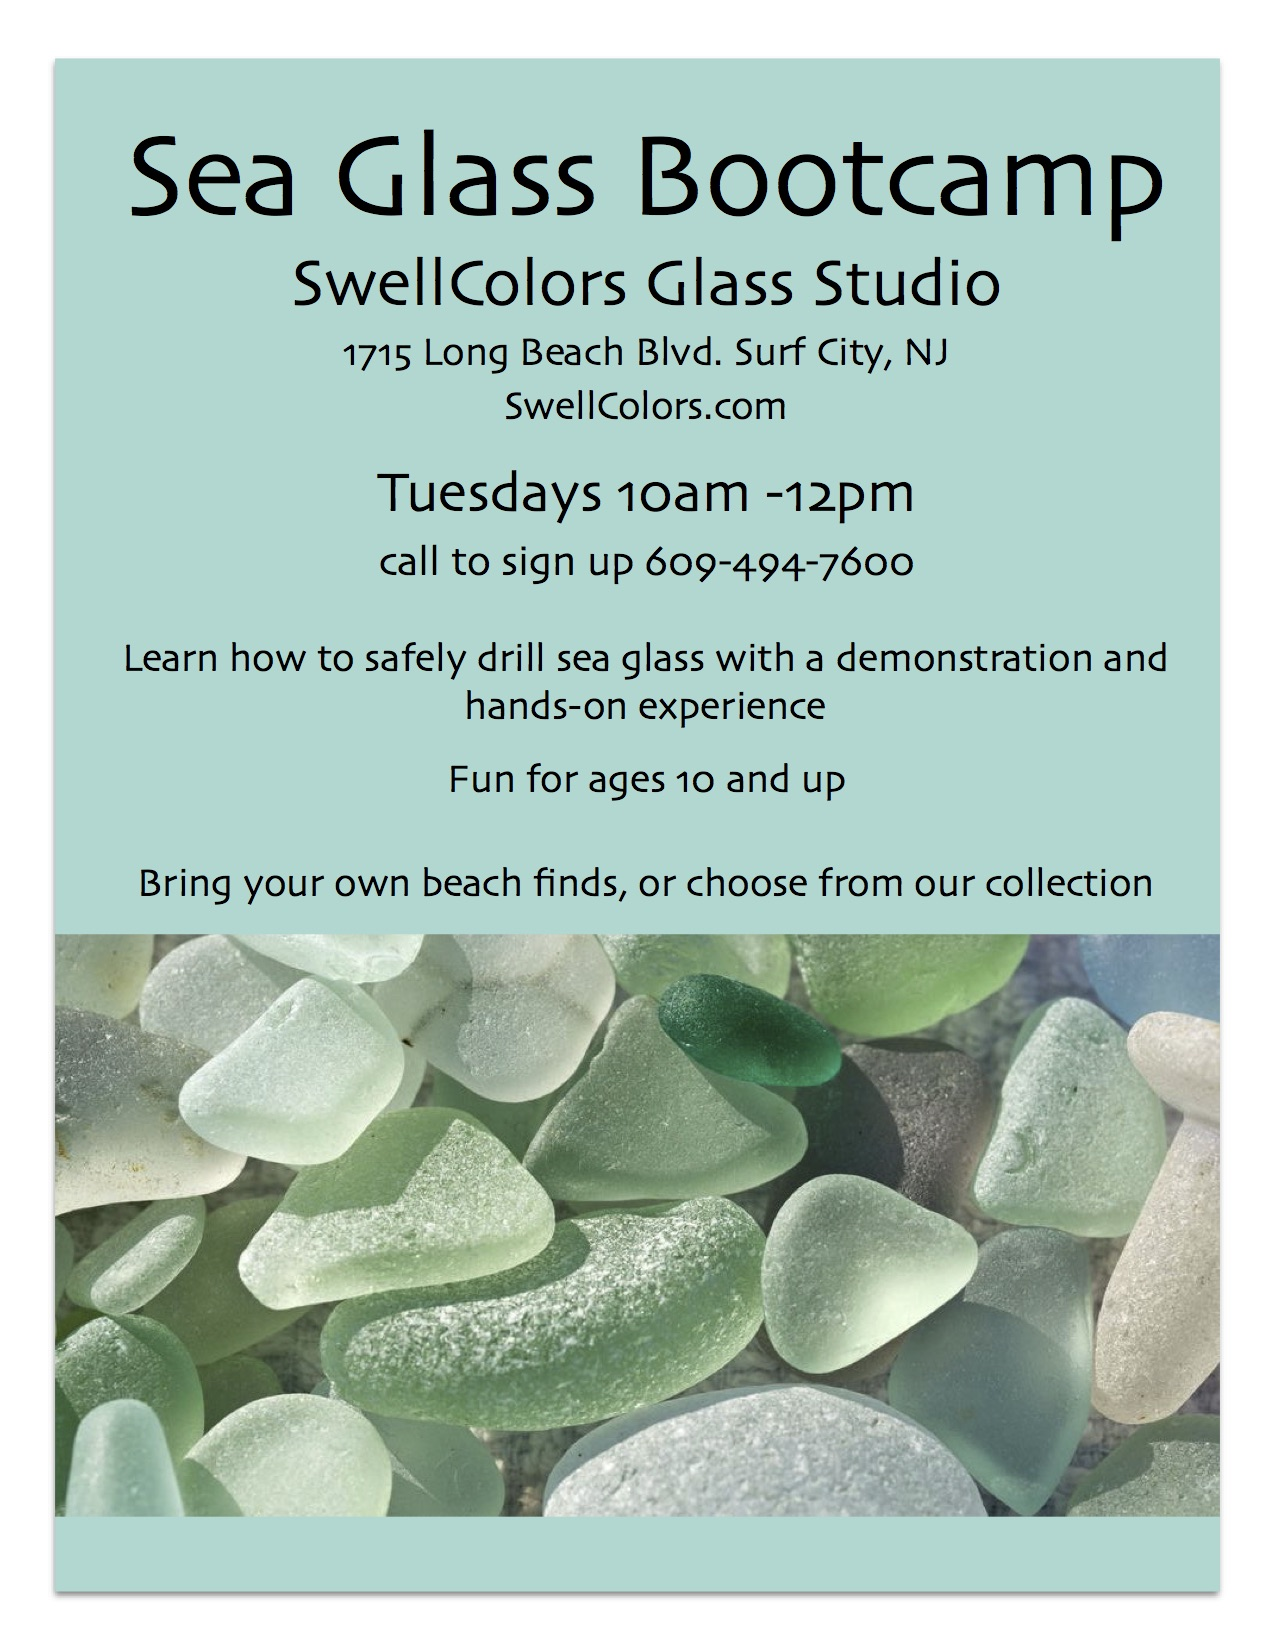 Join us for a class to learn how to safely drill your own sea glass. You can bring pieces you've found yourself, or choose from our collection. At the end of the class, wire is added to your pieces so you can add them to a chain or cord and wear your beautiful treasures. Call us ahead of time so we are ready for your class. This one-on-one class usually lasts about an hour and you can drill up to five pieces of sea glass to take home with you. It's a great class for those interested in making their own jewelry or those who have always wondered how glass is drilled.